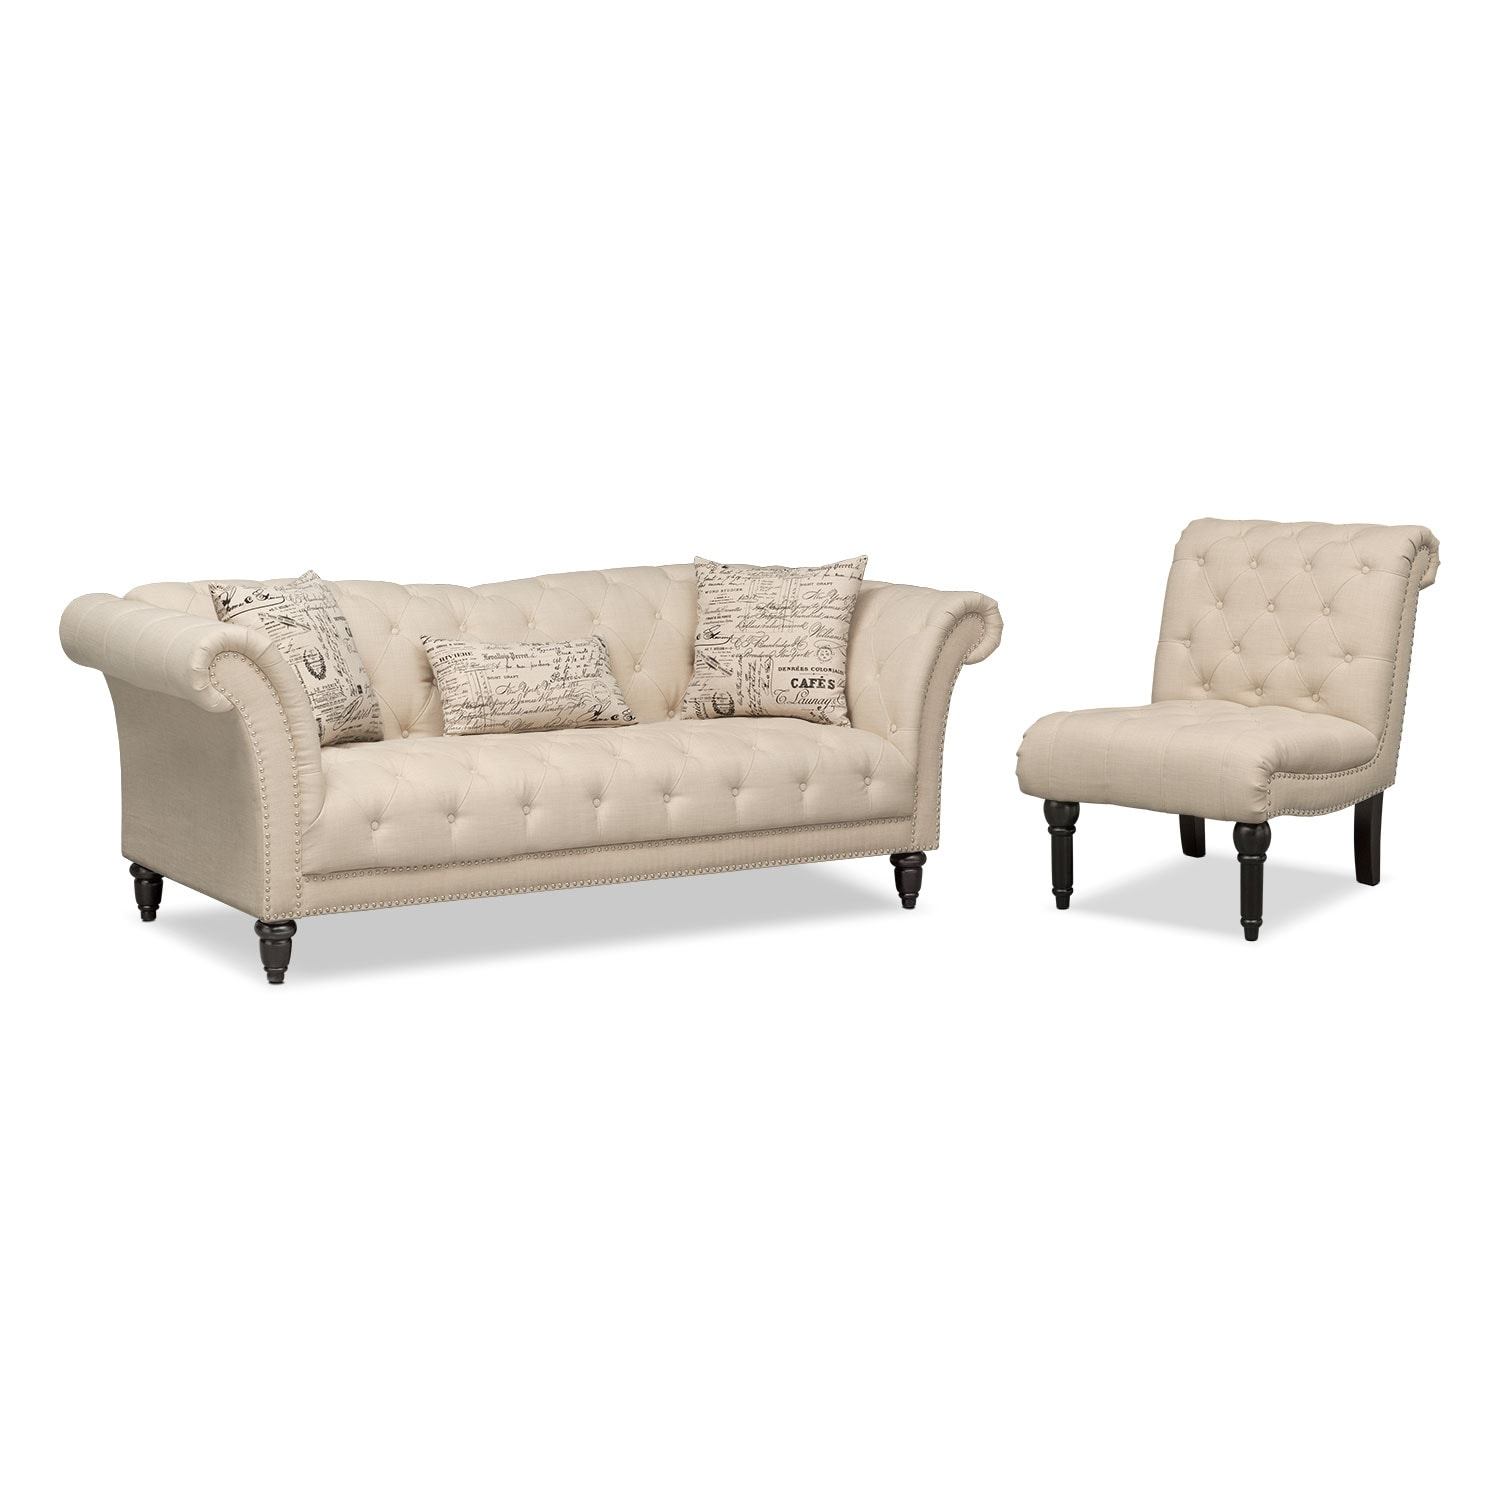 Living Room Furniture - Marisol Sofa and Armless Chair - Beige